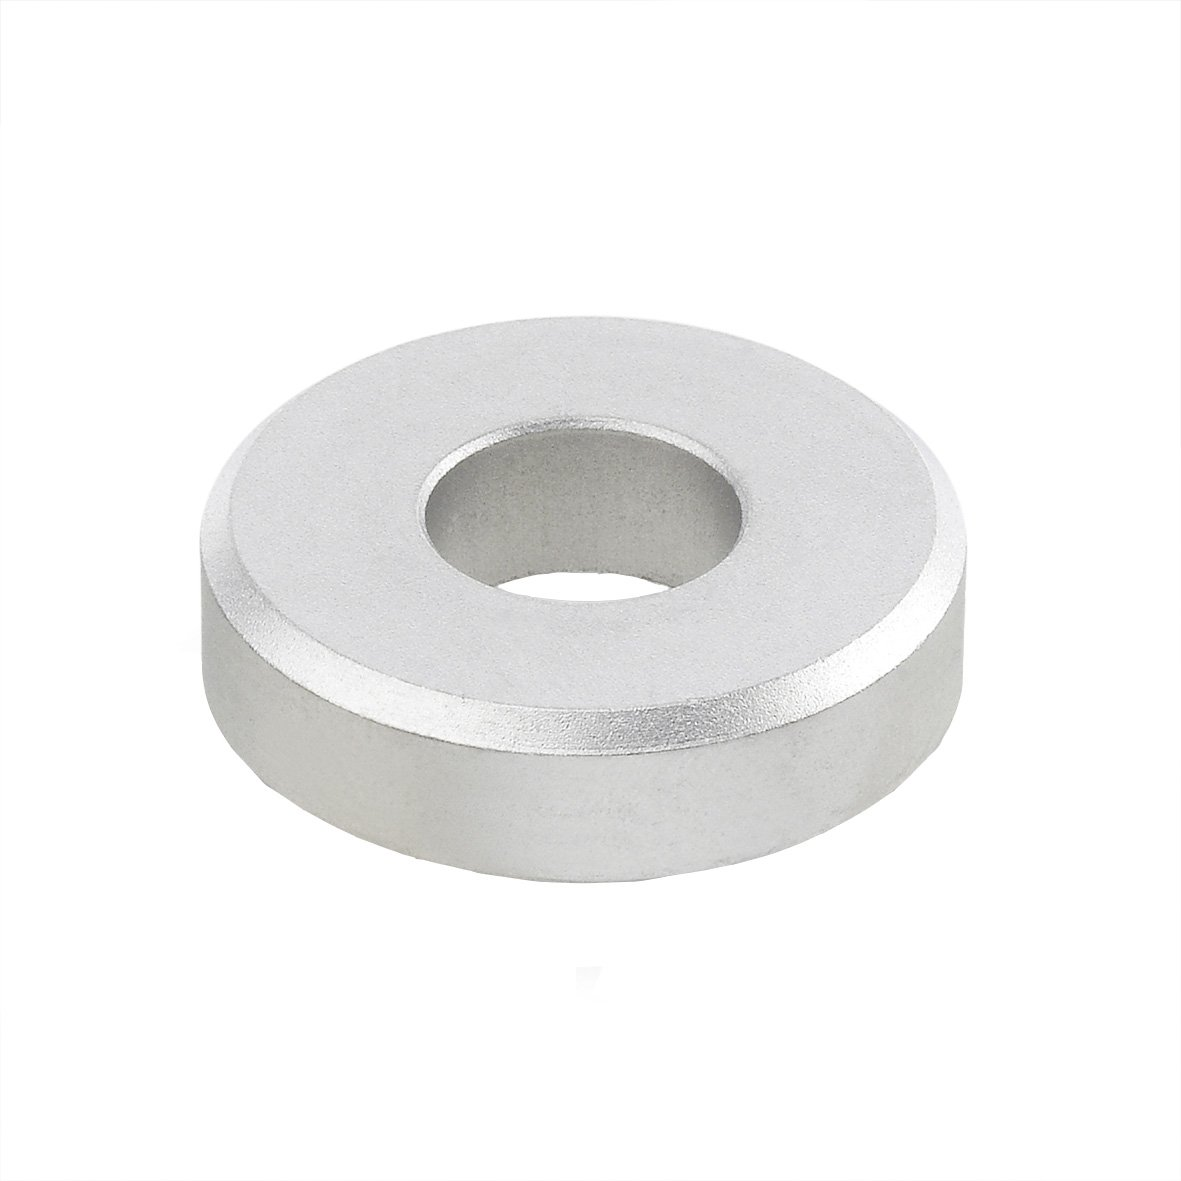 6 mm Bore J.W Stainless Steel 4 mm Thickness Winco 6341-NI-6-15-A-MT GN6341-NI Washer with Cylindrical Bore 15 mm OD